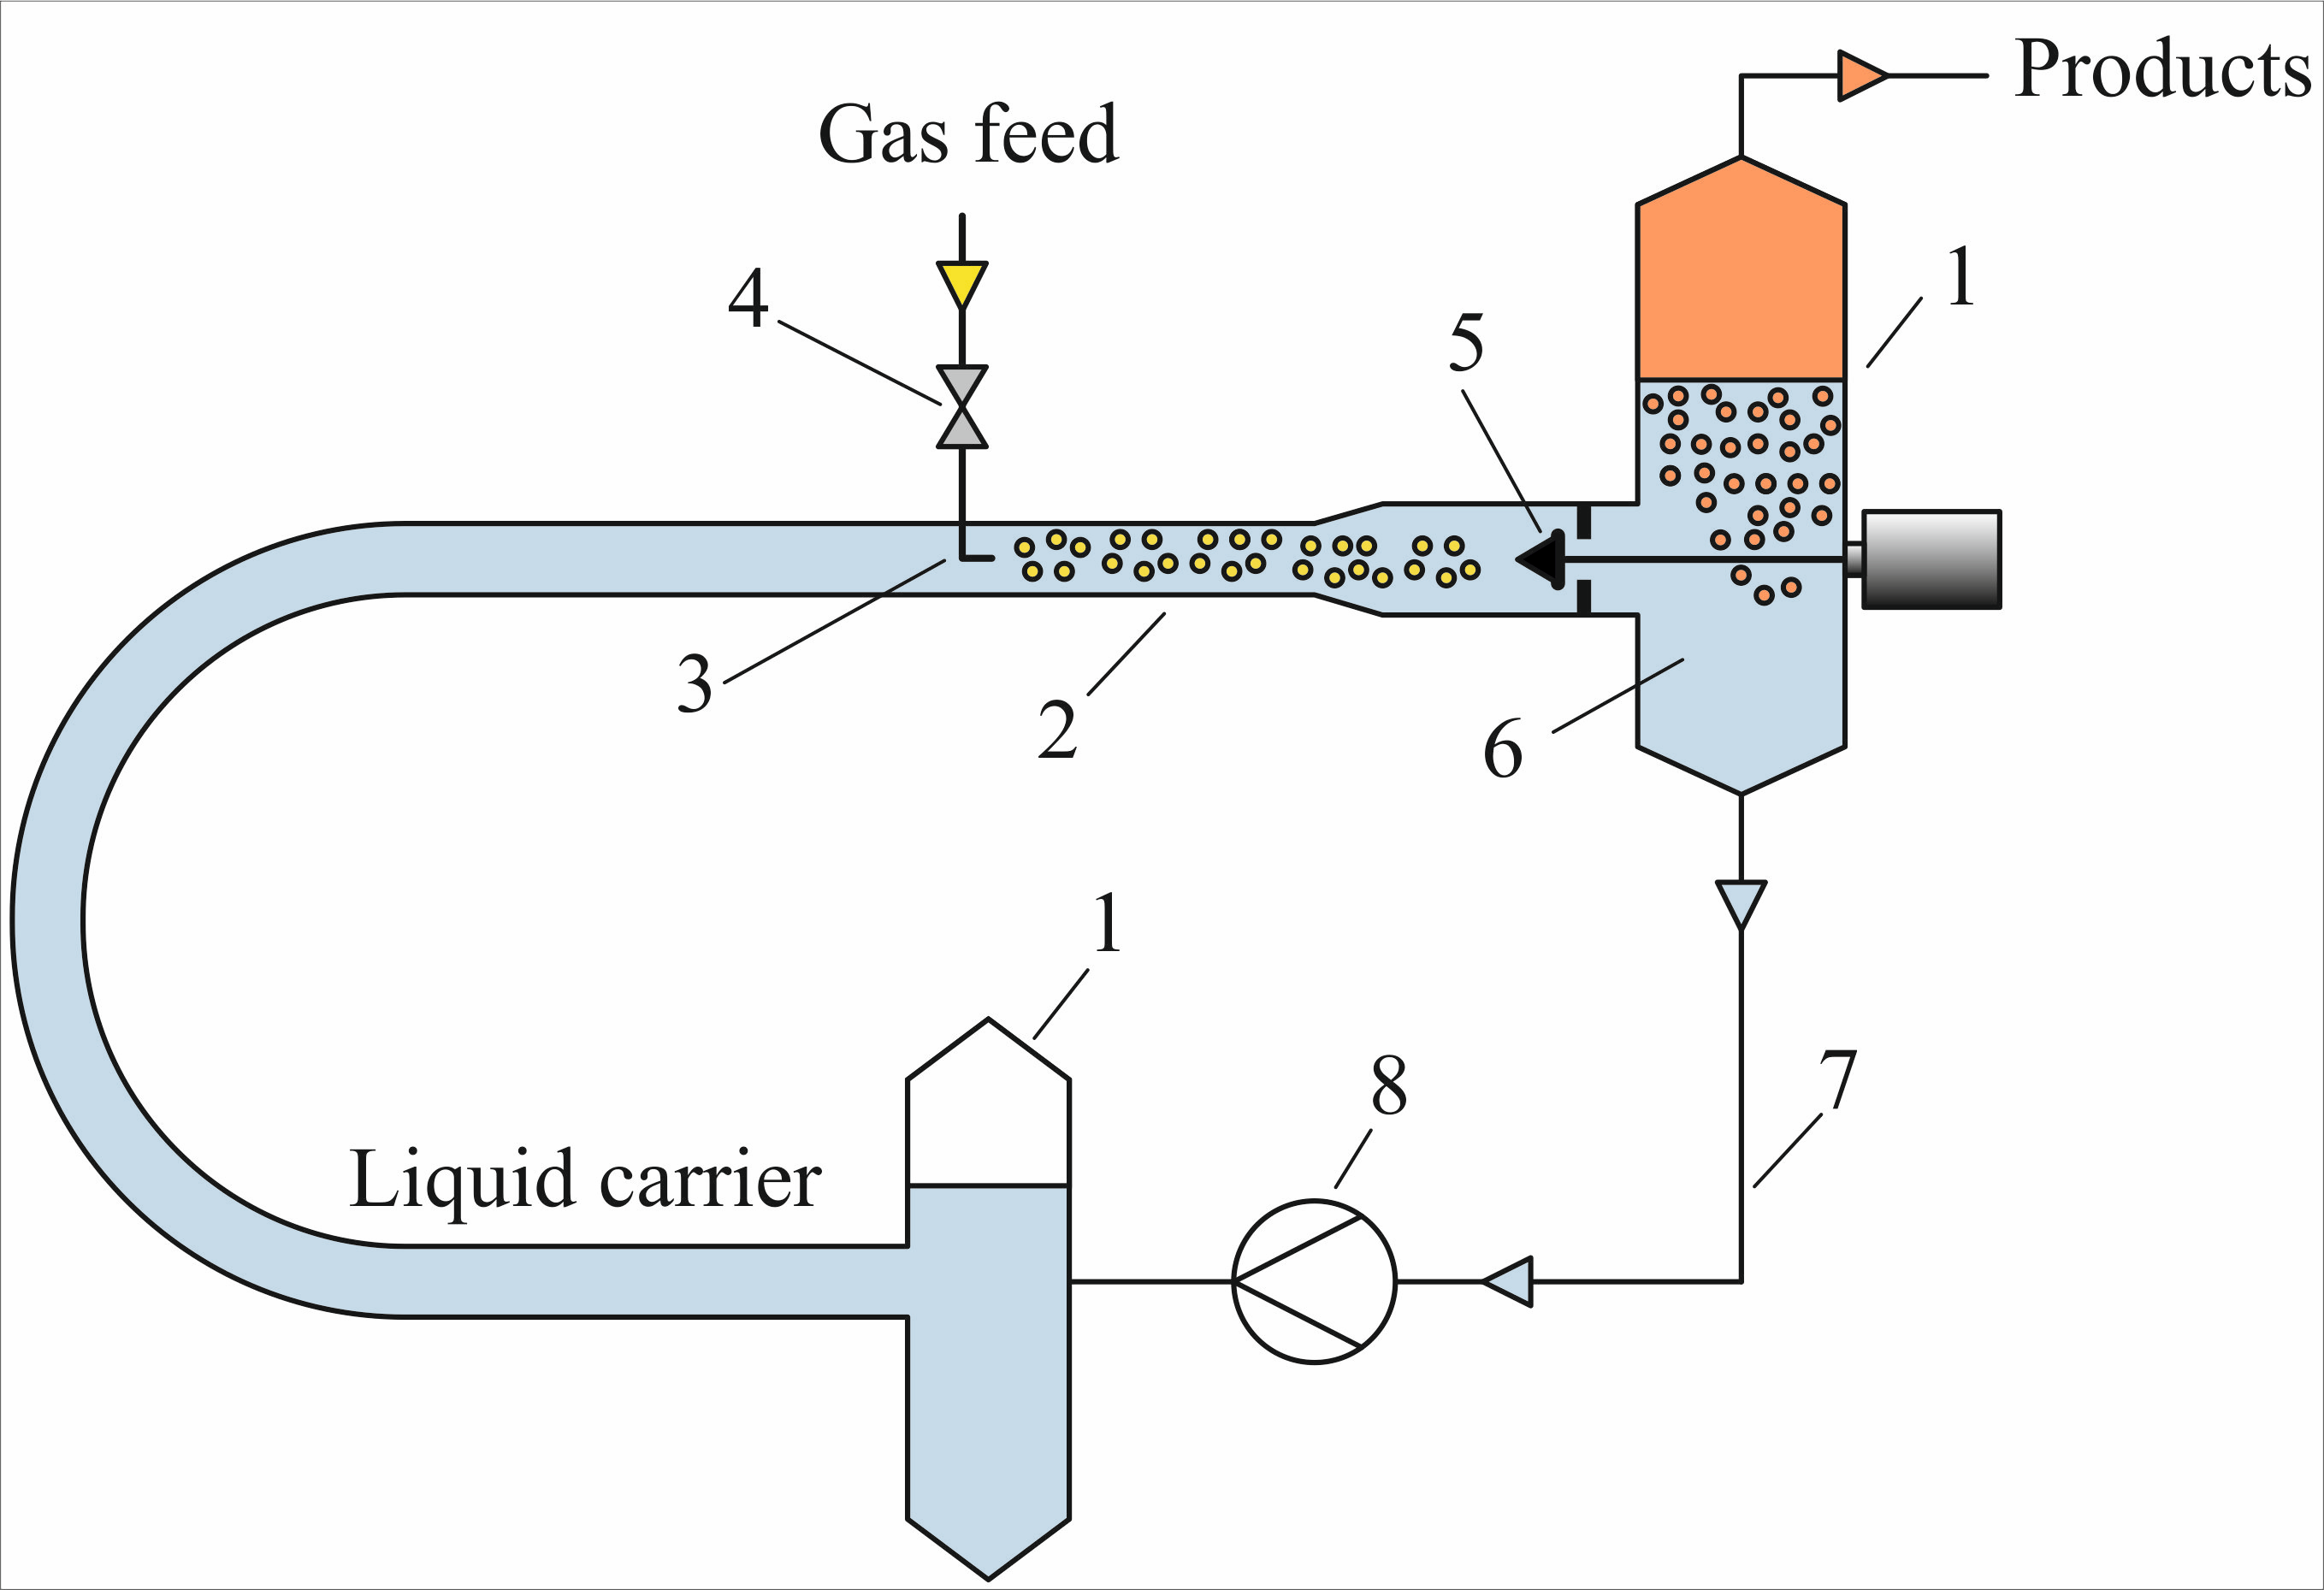 liquid phase chemical reactors Chapter 1: mole balances industrial reactors liquid phase reactions semibatch reactors and cstrs are used primarily for liquid-phase reactions a semibatch reactor (figure 1-1) has essentially the same disadvantages as the batch reactor.